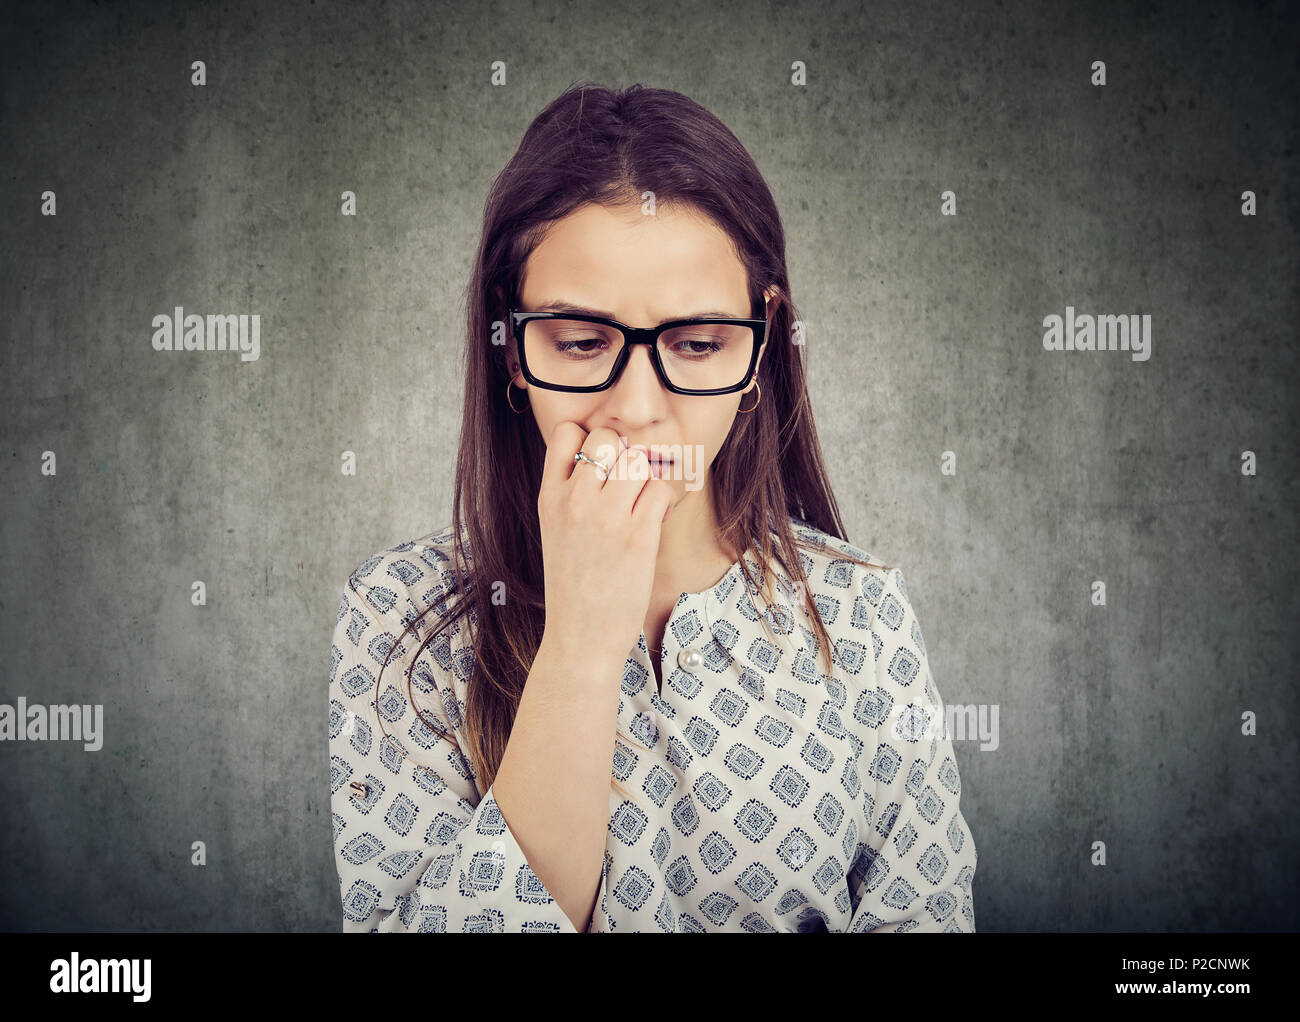 Nervous woman biting nails and looking down feeling insecure - Stock Image